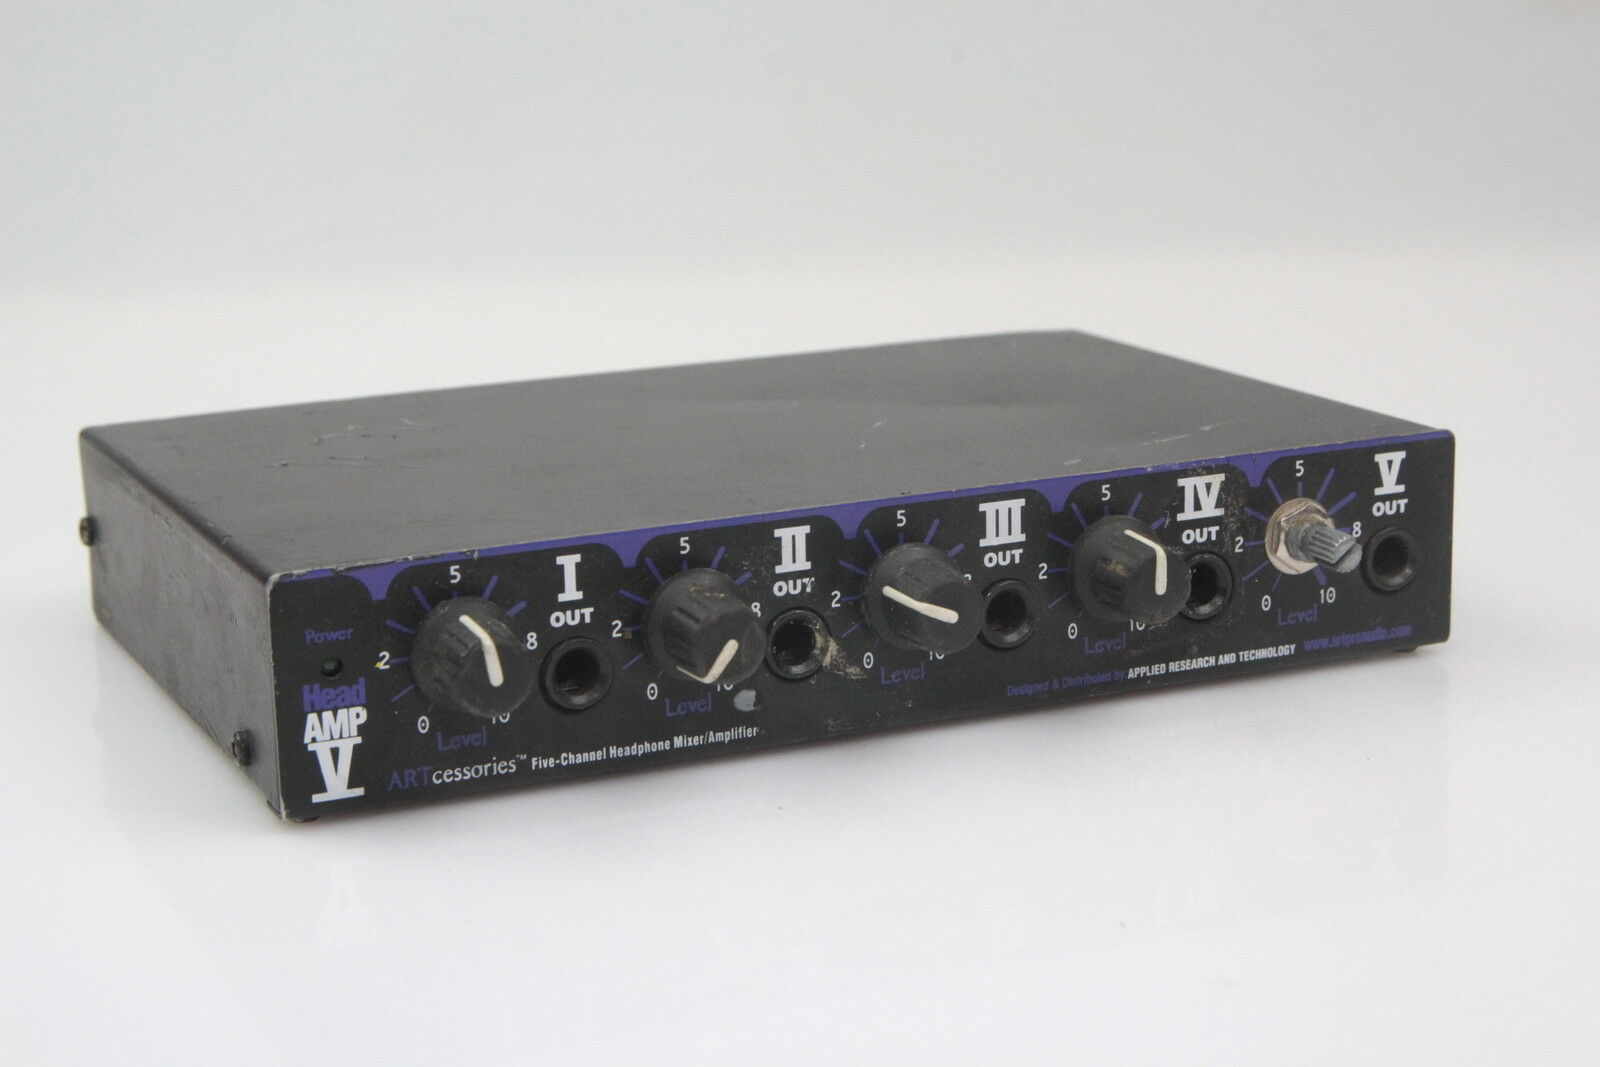 ART 5 Five-Channel Headphone Mixer Amplifier Head AMP  1